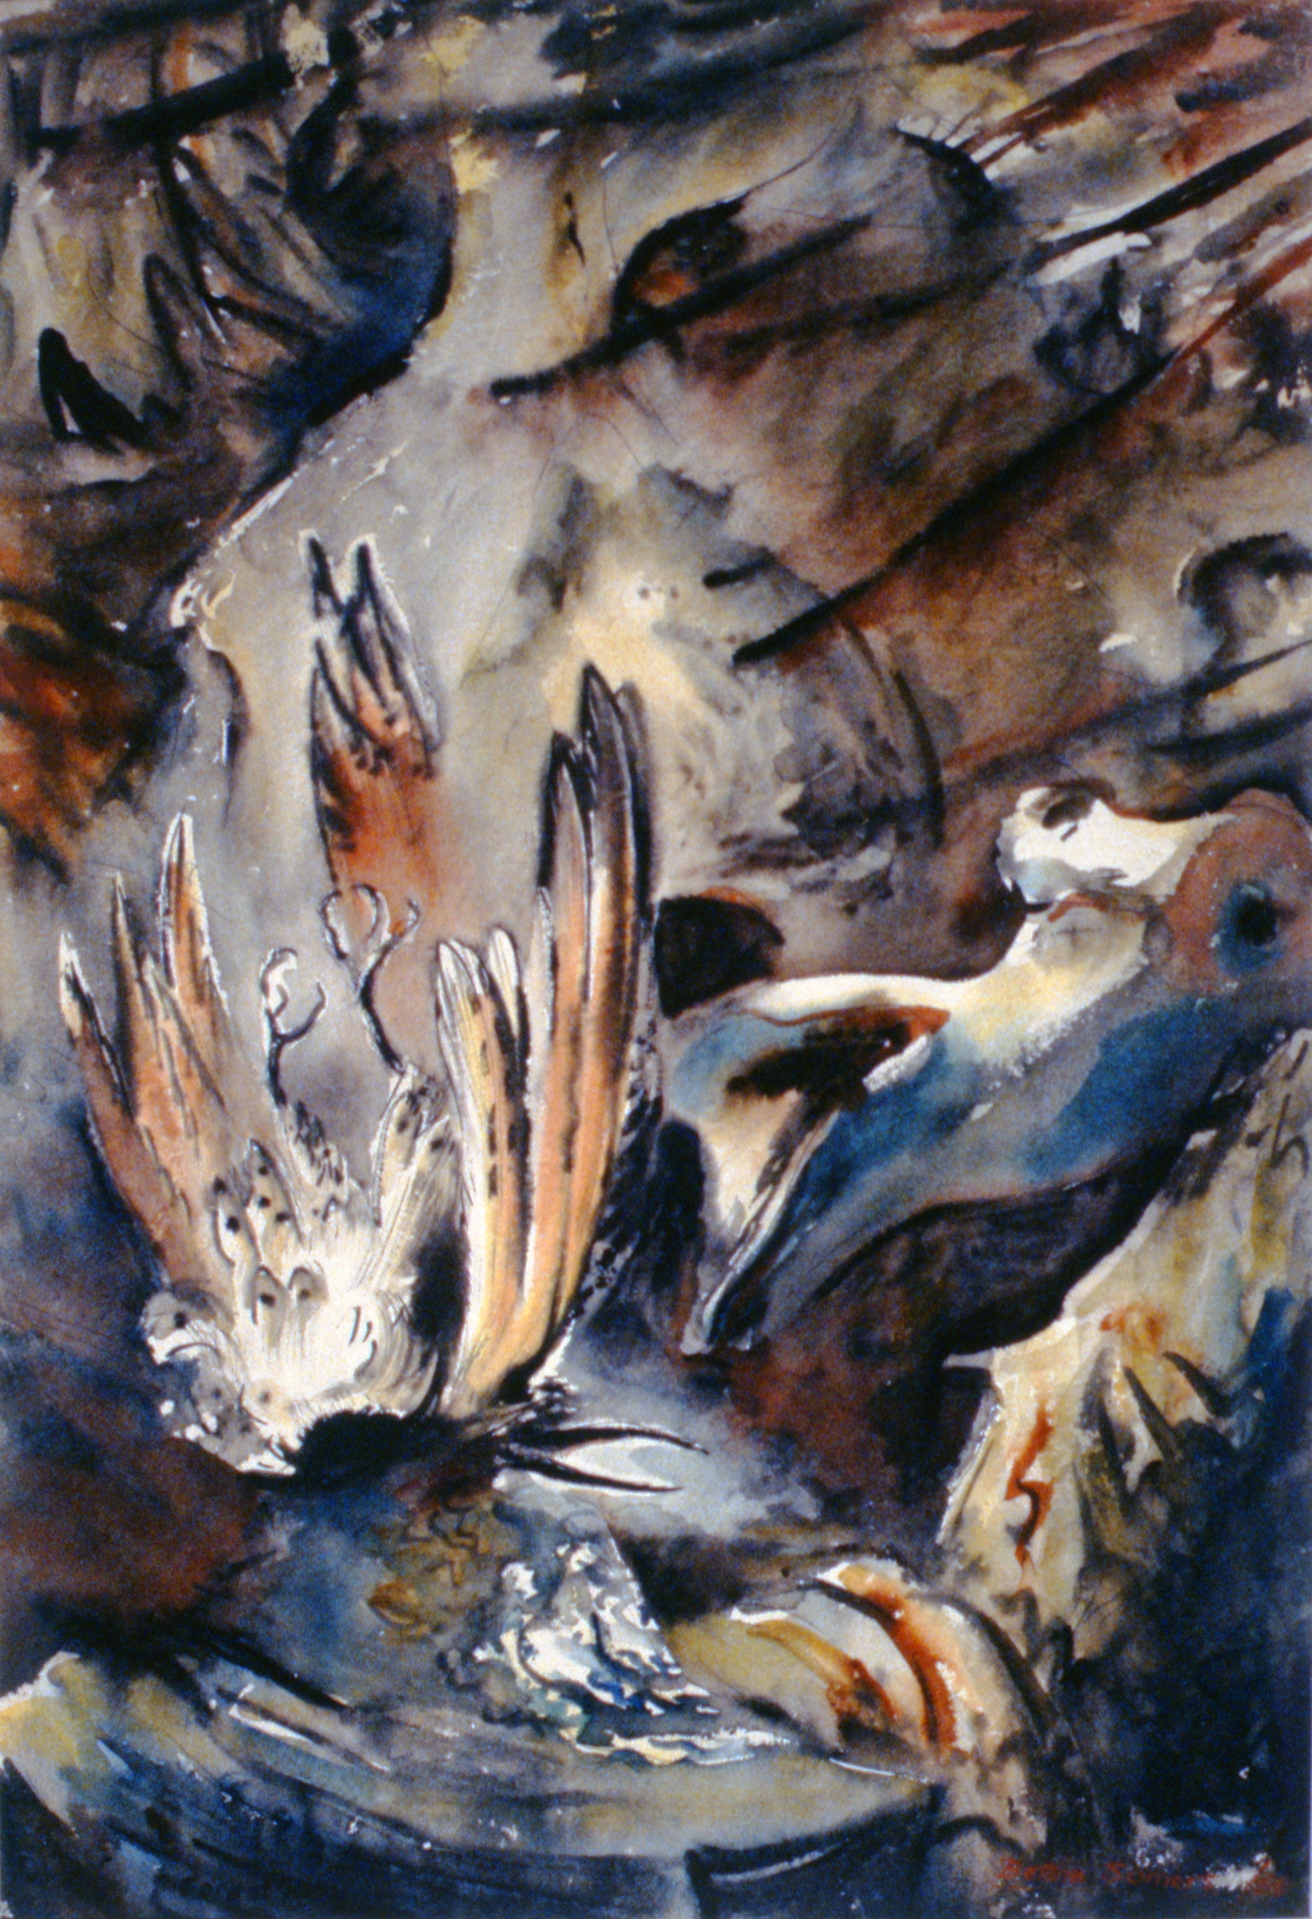 """Fallen Flicker  or  Forest Requiem, 1950, Bettina Somers, watercolour, pen and ink on paper, 28"""" x 22"""", 1990.01.01. Gift of the artist's estatec/o Mike & Gwen Calverley."""